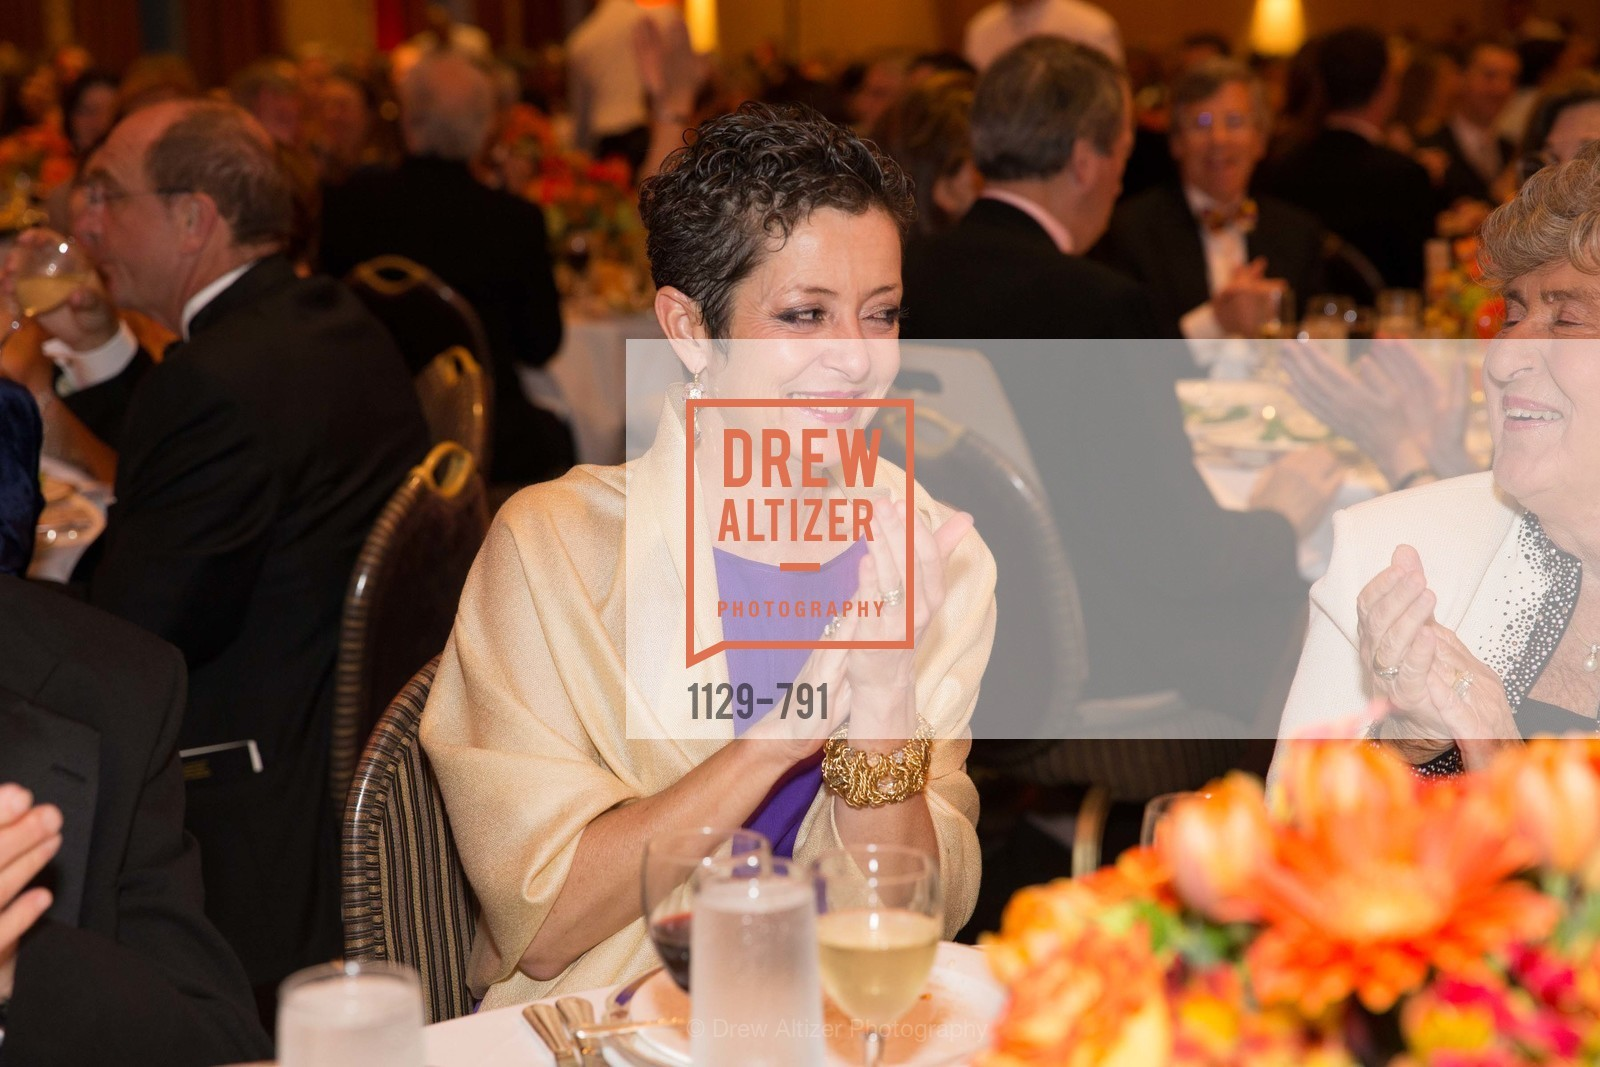 Michelle Buhler, SAN FRANCISCO HERITAGE Soiree 2015, US, April 18th, 2015,Drew Altizer, Drew Altizer Photography, full-service agency, private events, San Francisco photographer, photographer california